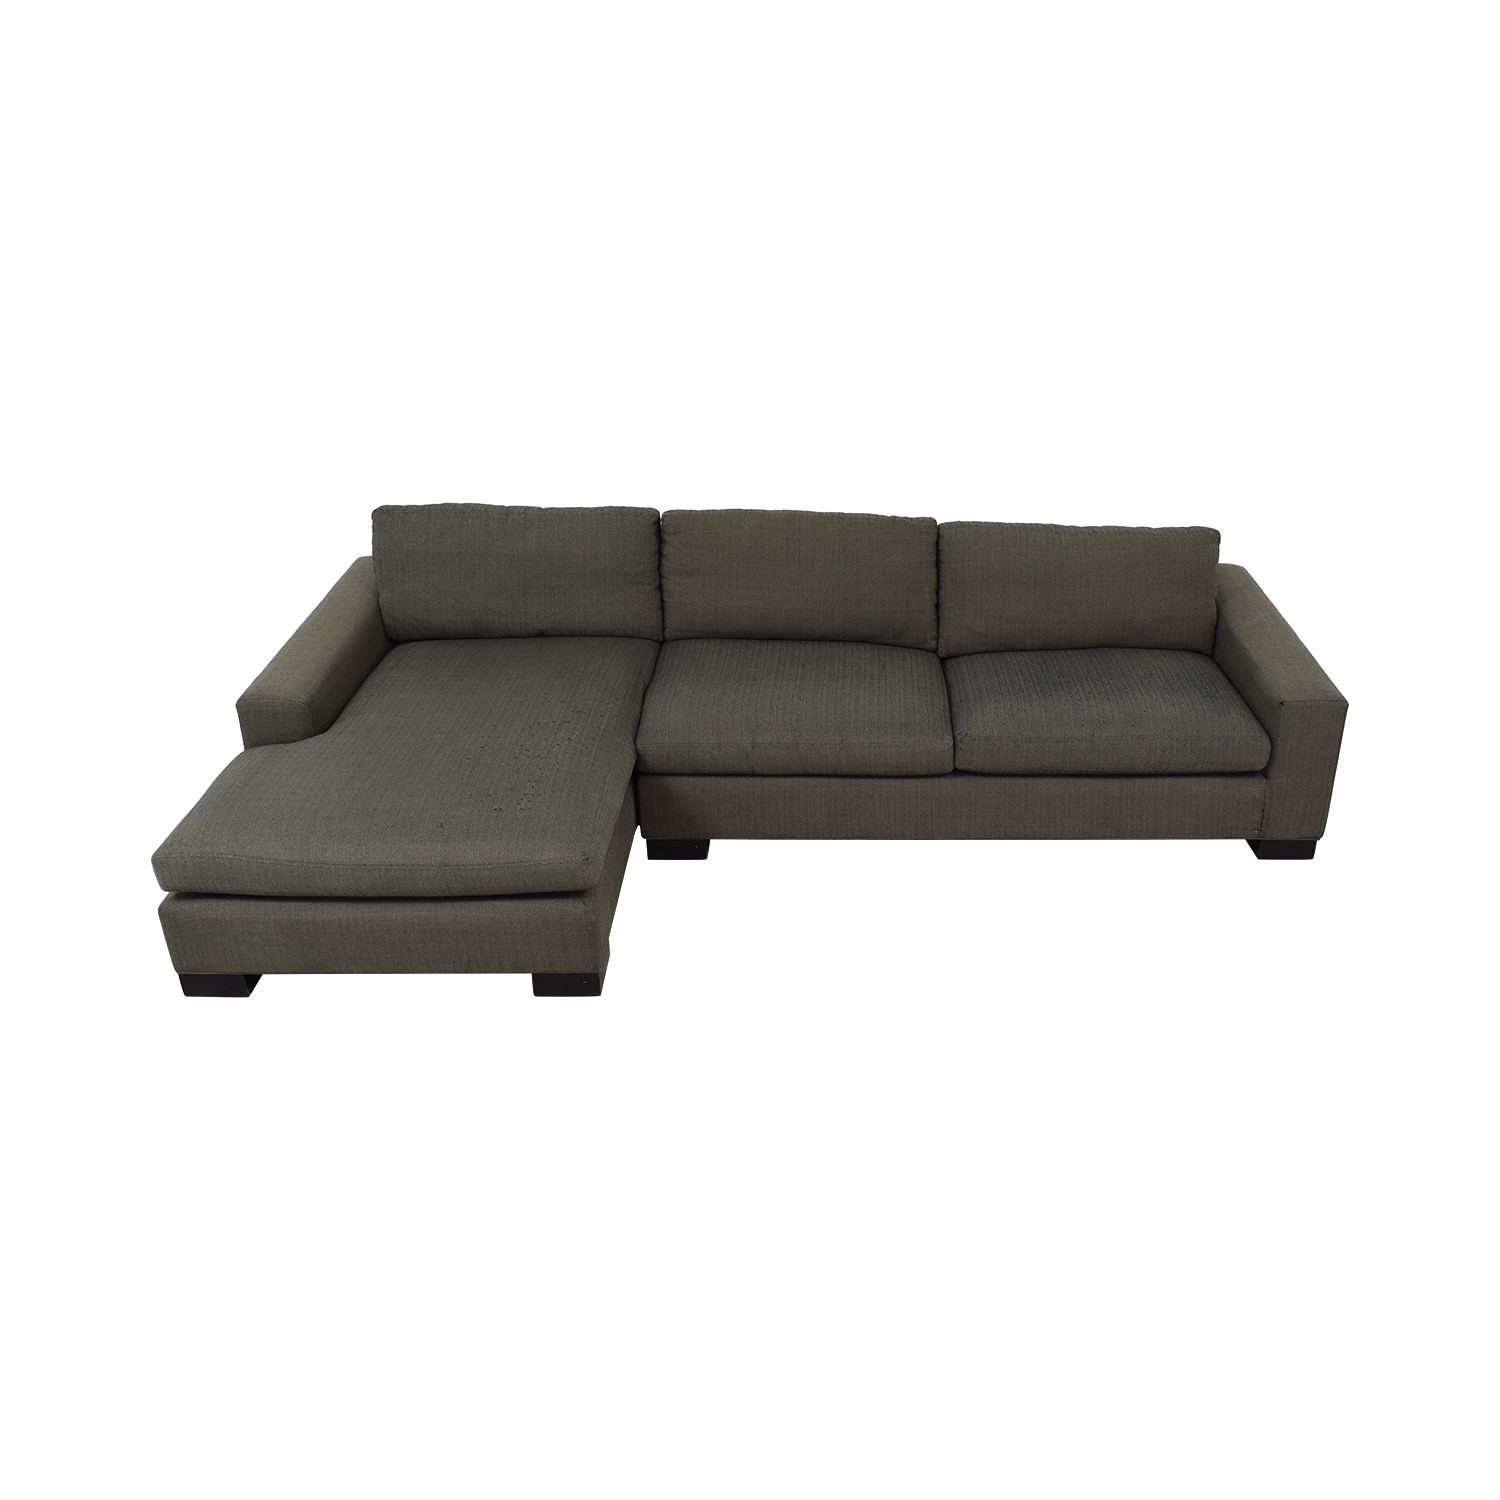 Room & Board Brown Chaise Sectional / Sectionals